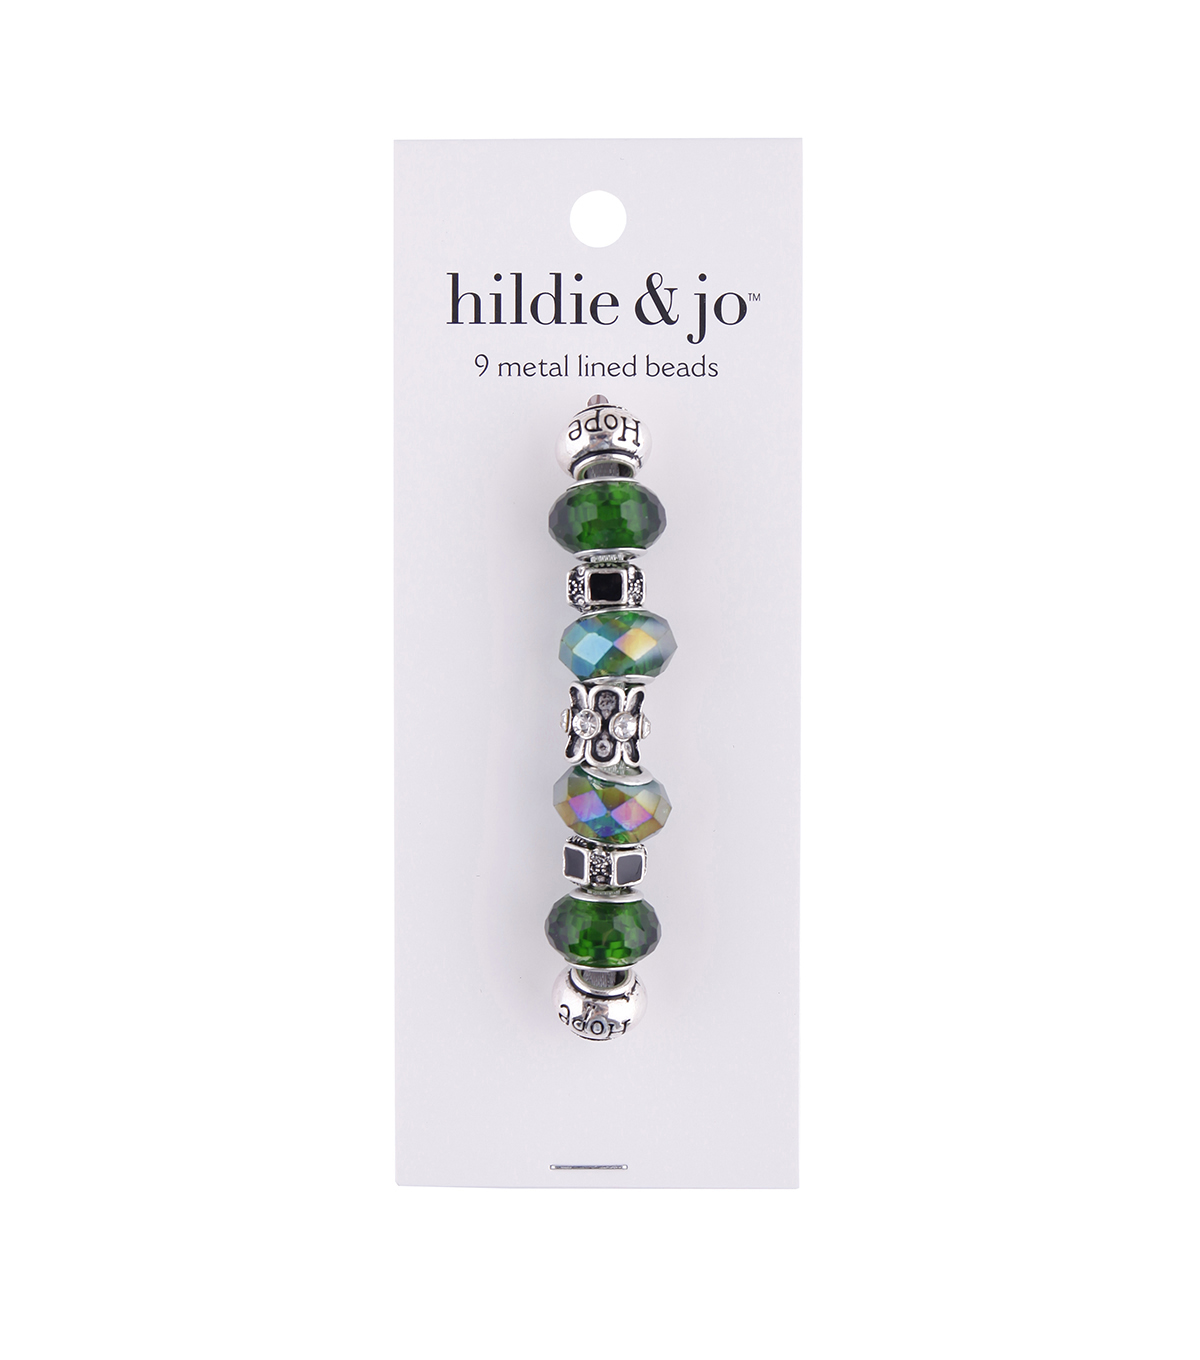 hildie & jo 9 pk Metal Lined Glass Beads-Black & Green